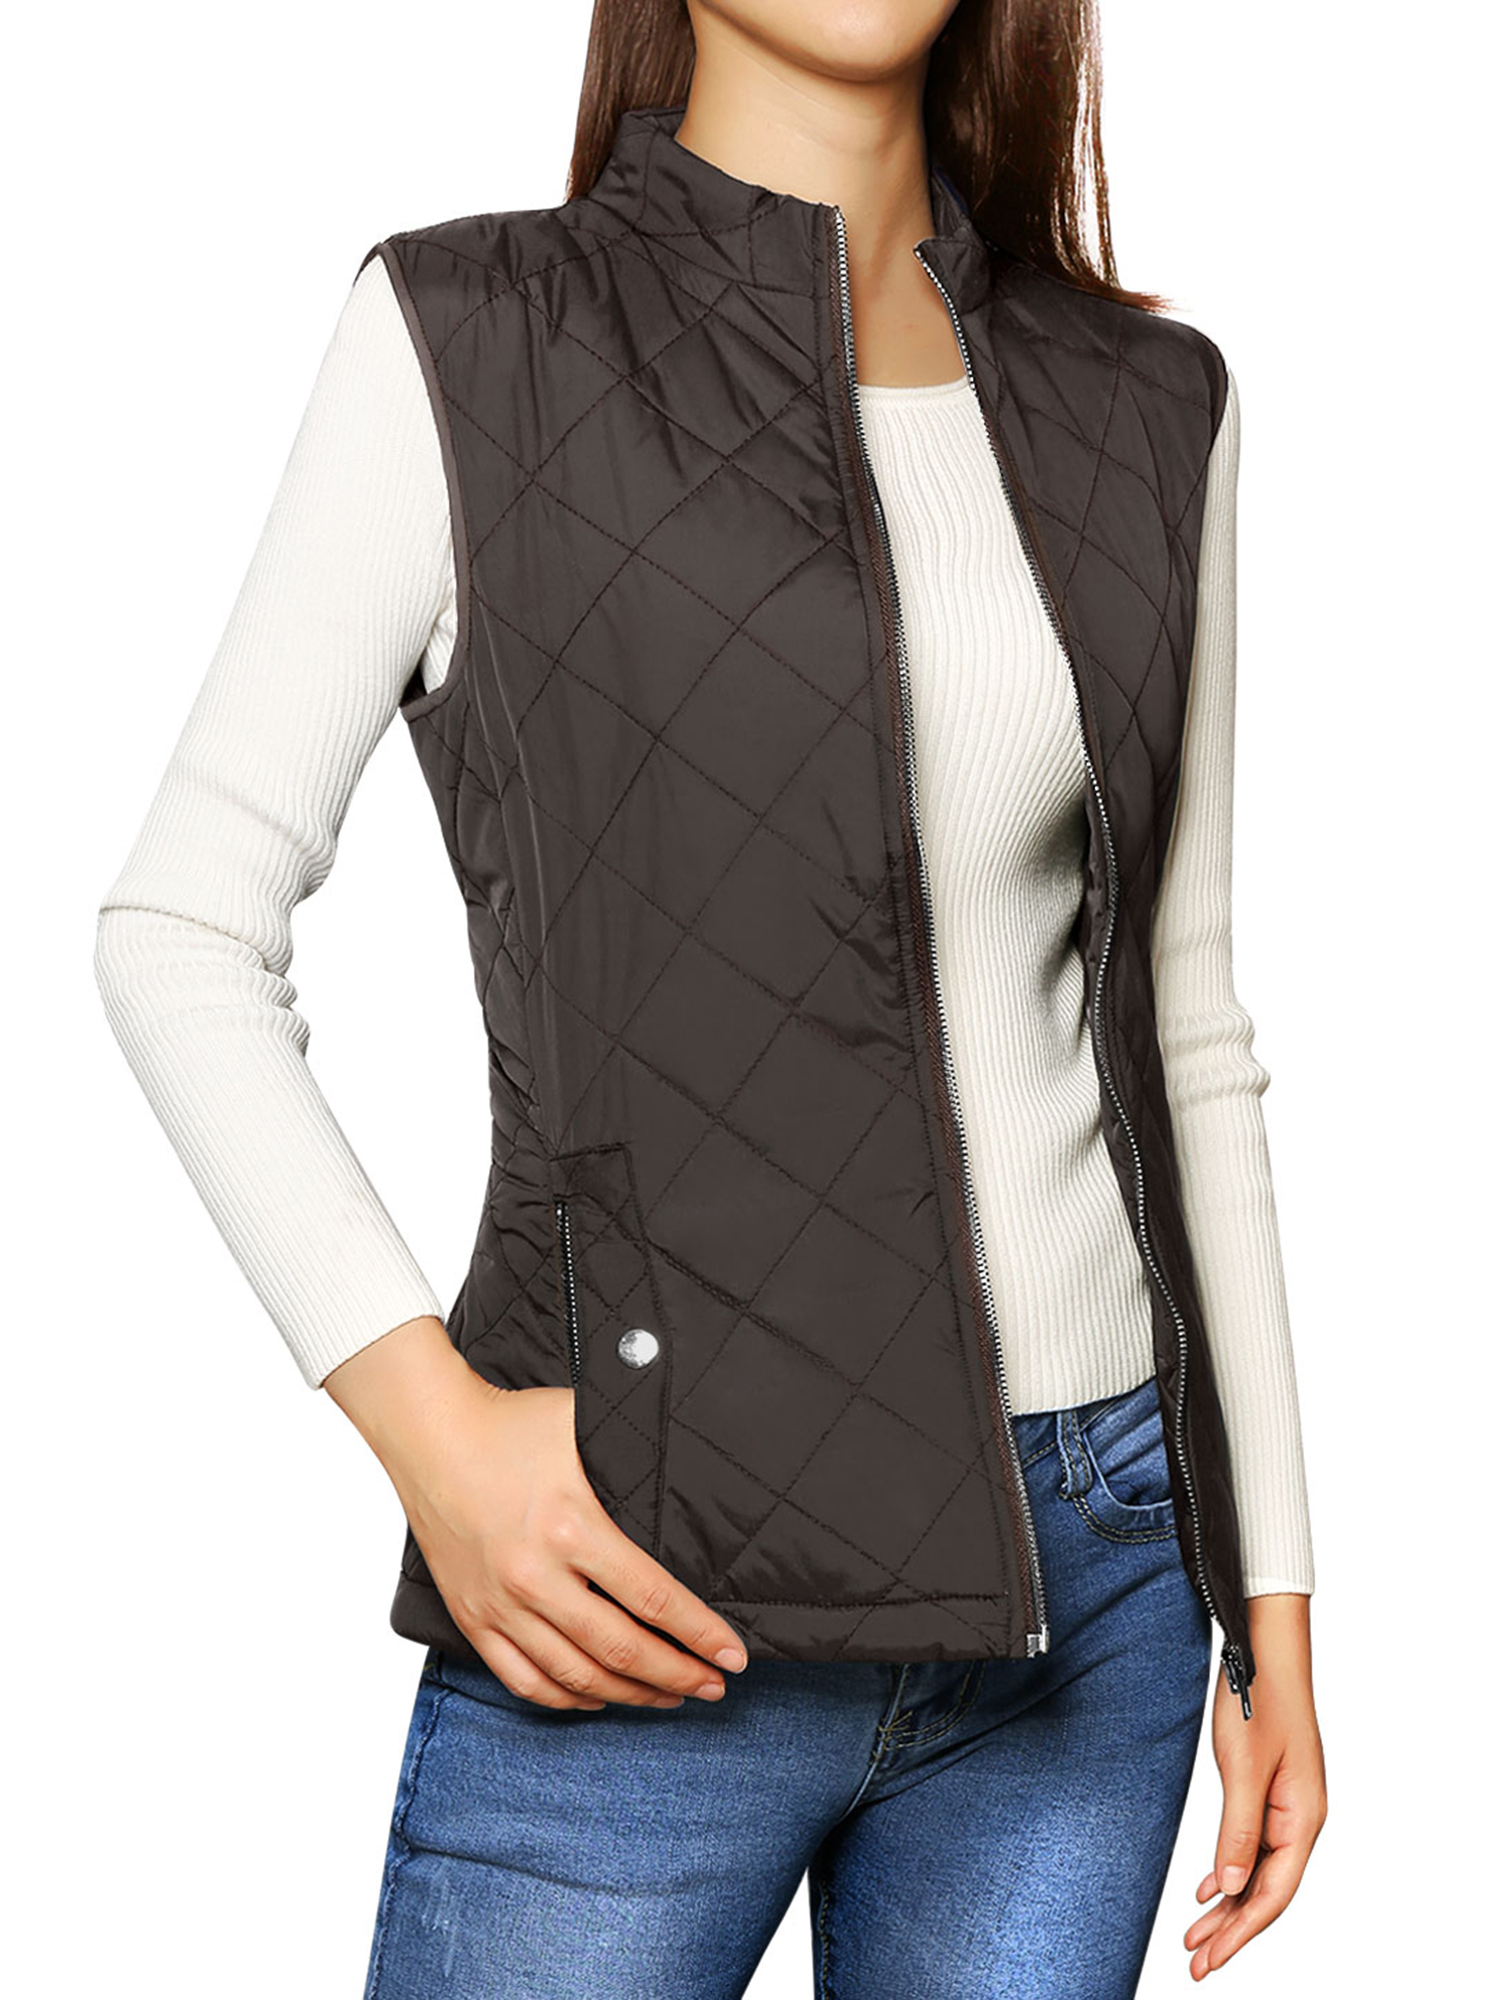 Mother's Day Gift Women's Zip Up Front Stand Collar Lightweight Quilted Padded Vest Coat Dark Blue L (US 14)